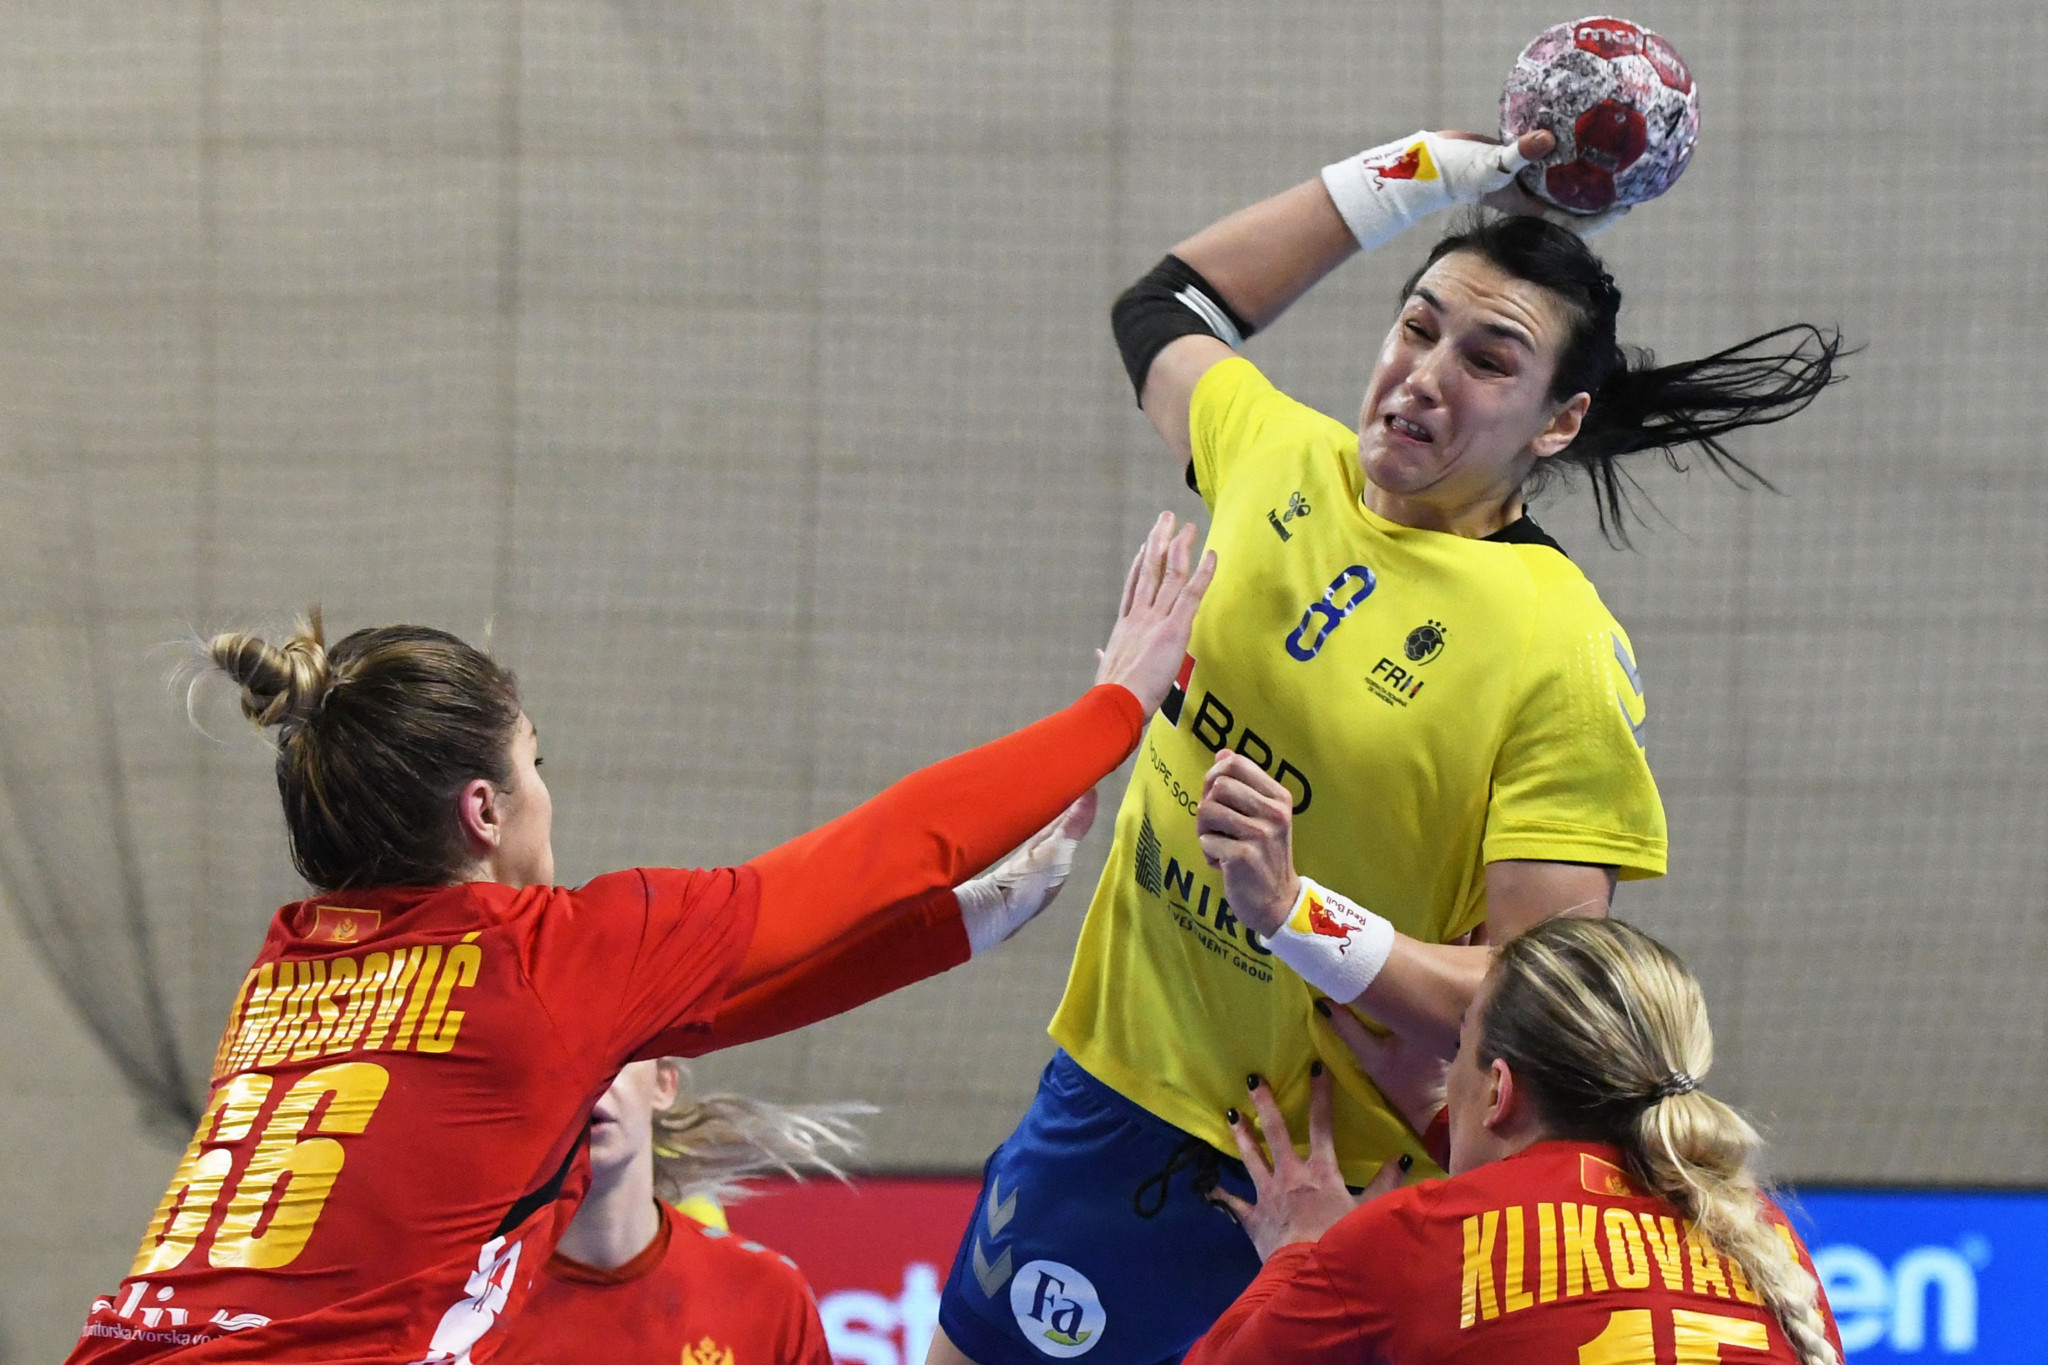 Romania (yellow shirts) were left to reflect what might have been as they missed out on qualifying for the Tokyo 2020 women's handball competition despite beating Montenegro ©Getty Images